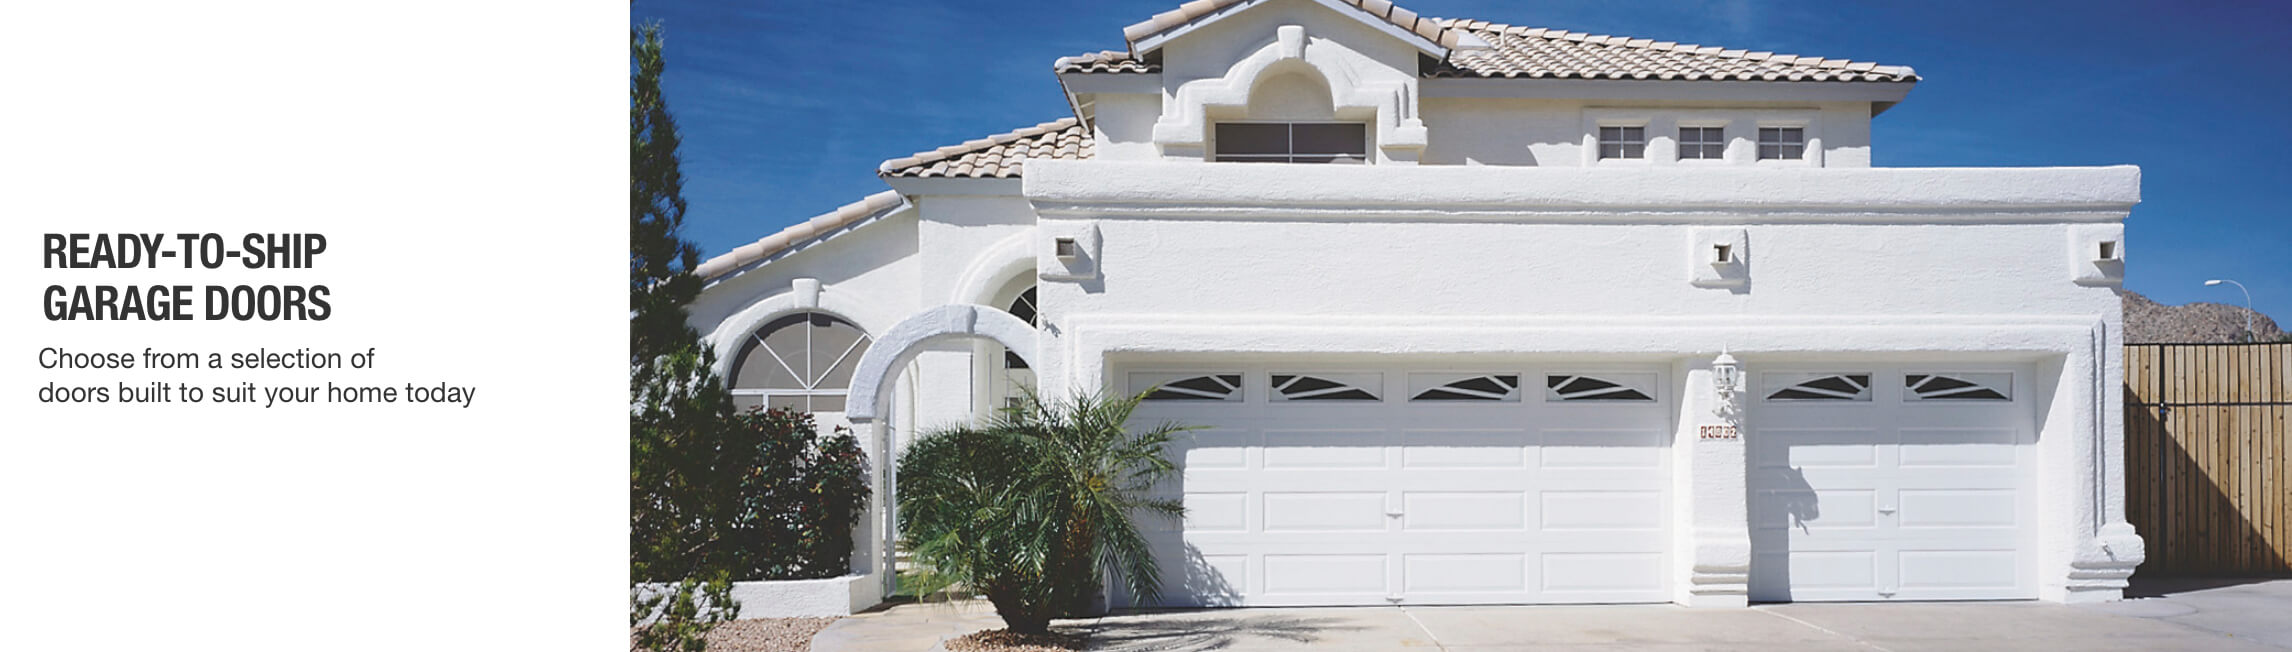 Mediterranean-style home with white garage doors and arched windows